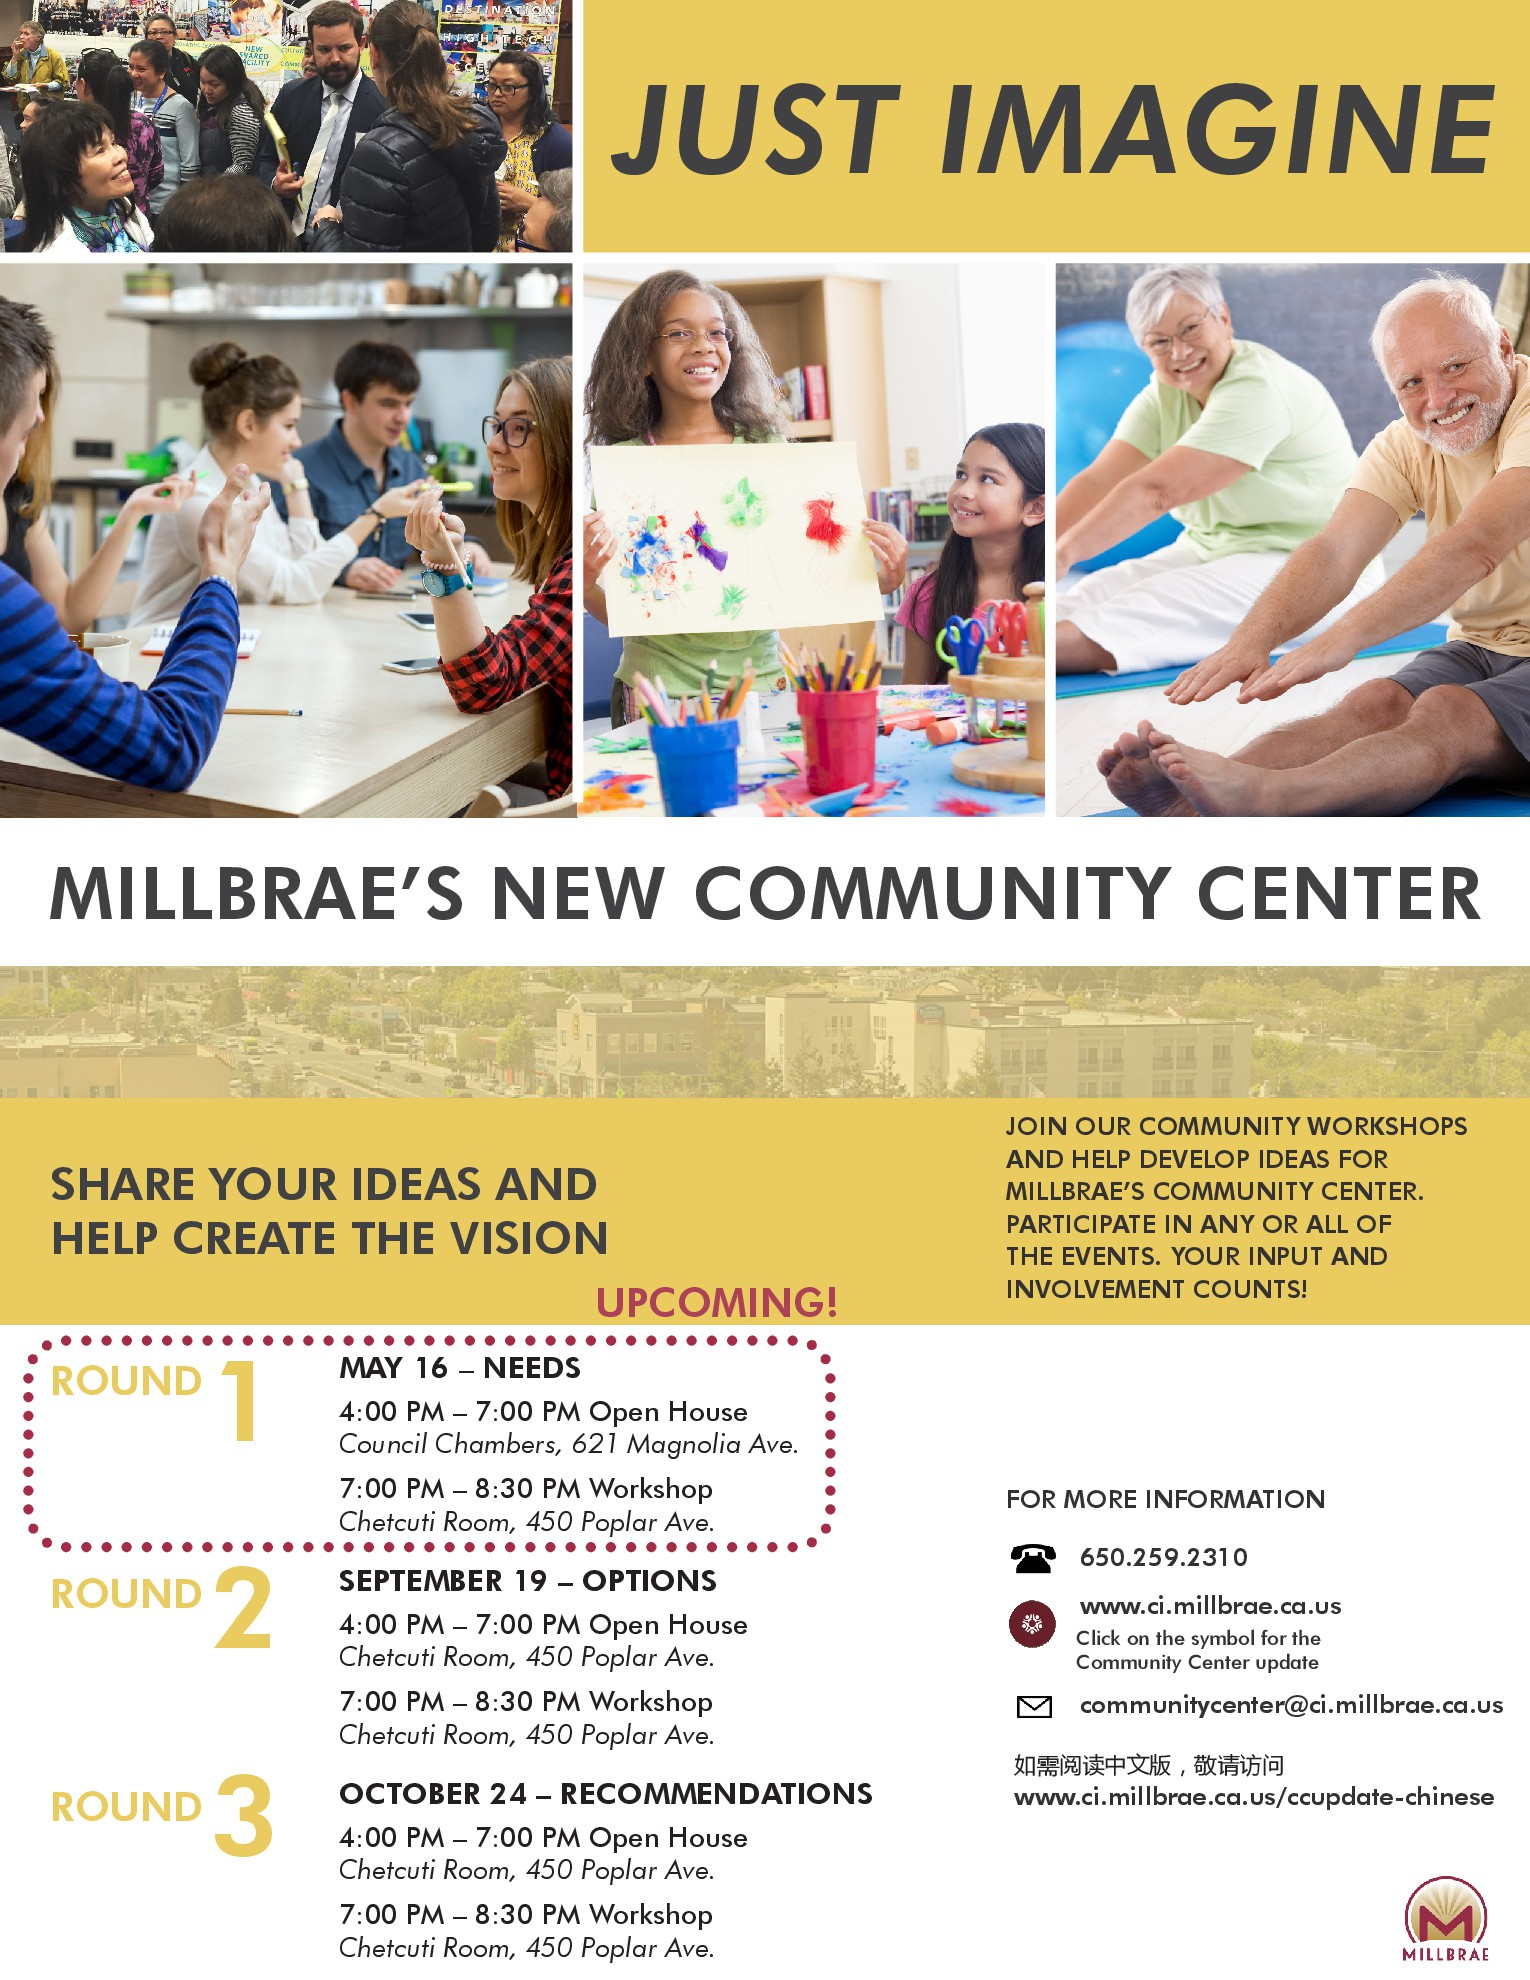 Millbrae Community Center Public Meetings Announcement